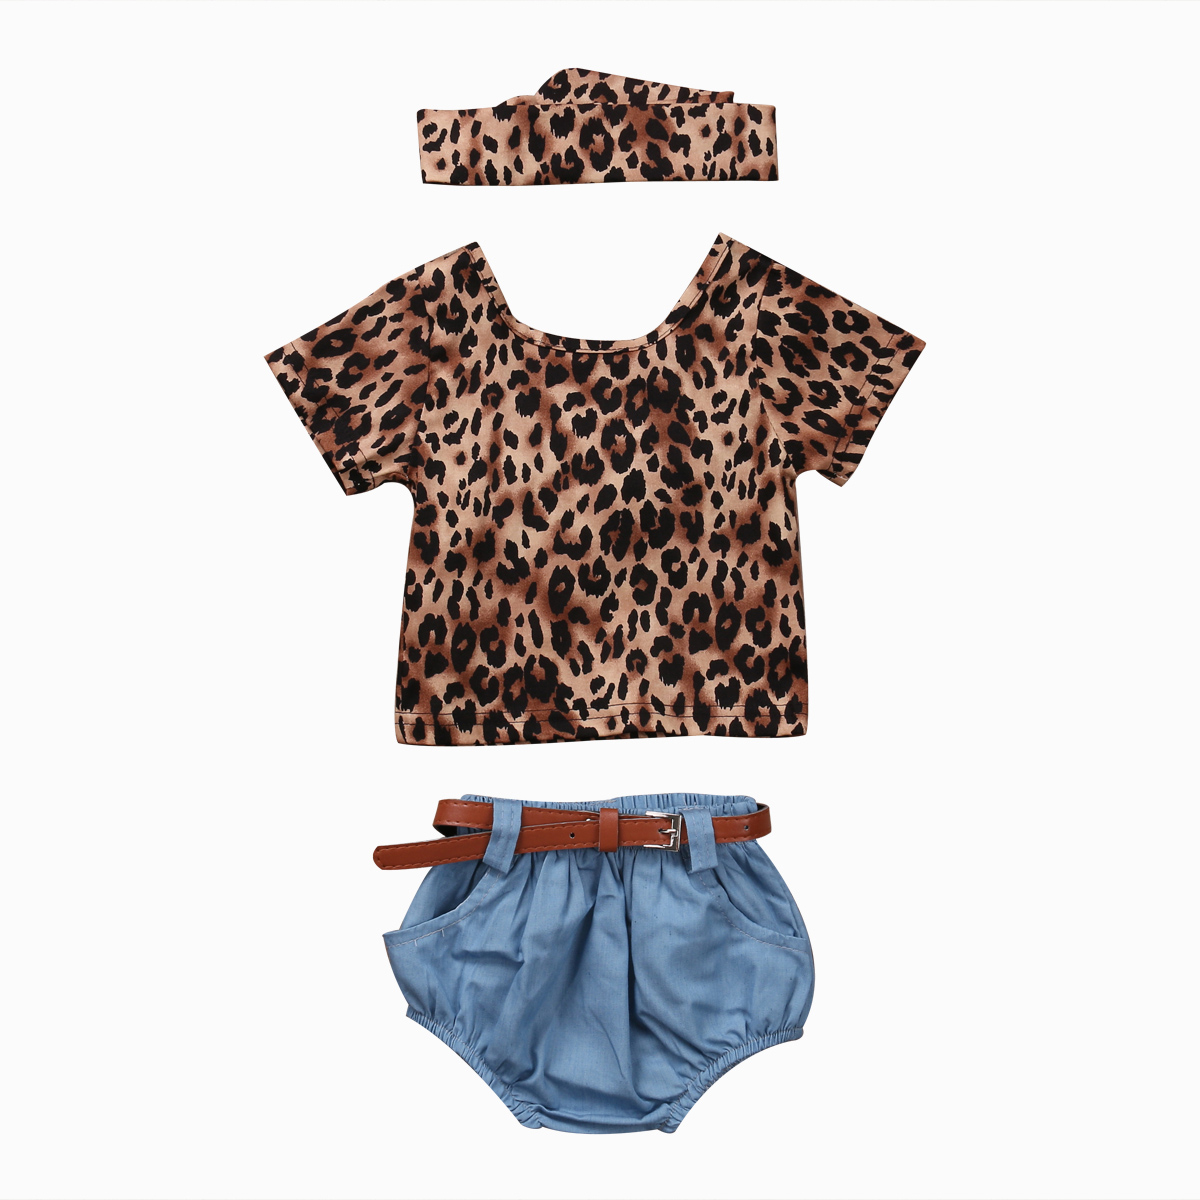 3pcs Sets Newborn Baby Girls Clothes Leopard Short Sleeve T-Shirt+Denim Shorts+Headhand Summer Toddler Girls Fashion Sunsuits